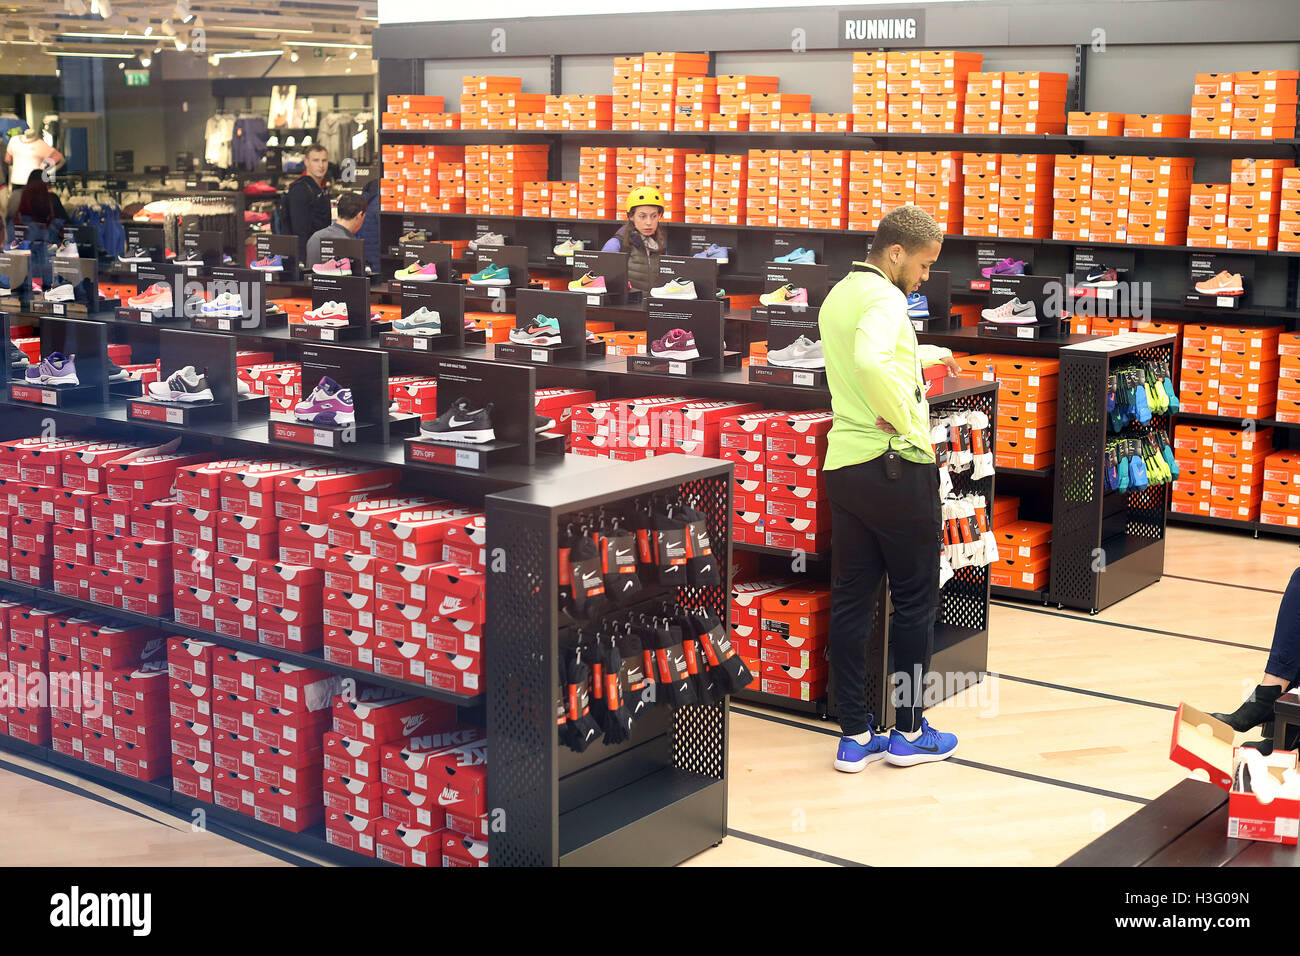 56dc192da9 Nike shop shoes trainers training shoe boxes Stock Photo: 122668049 ...